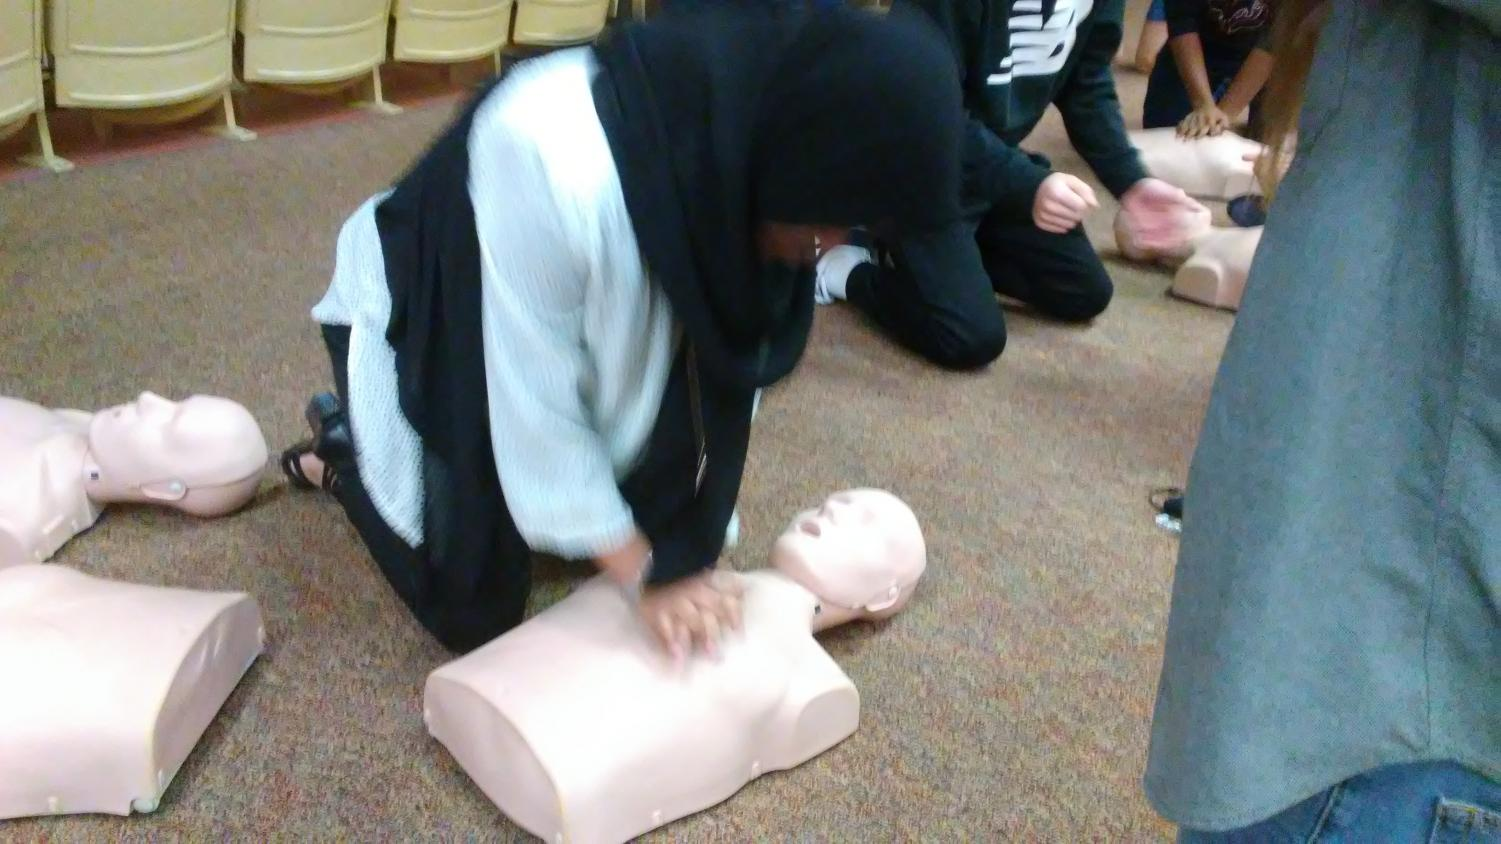 Khadejah Mohiuddin, a sophomore here at North Penn, was one of many students required to perform hands-on CPR.